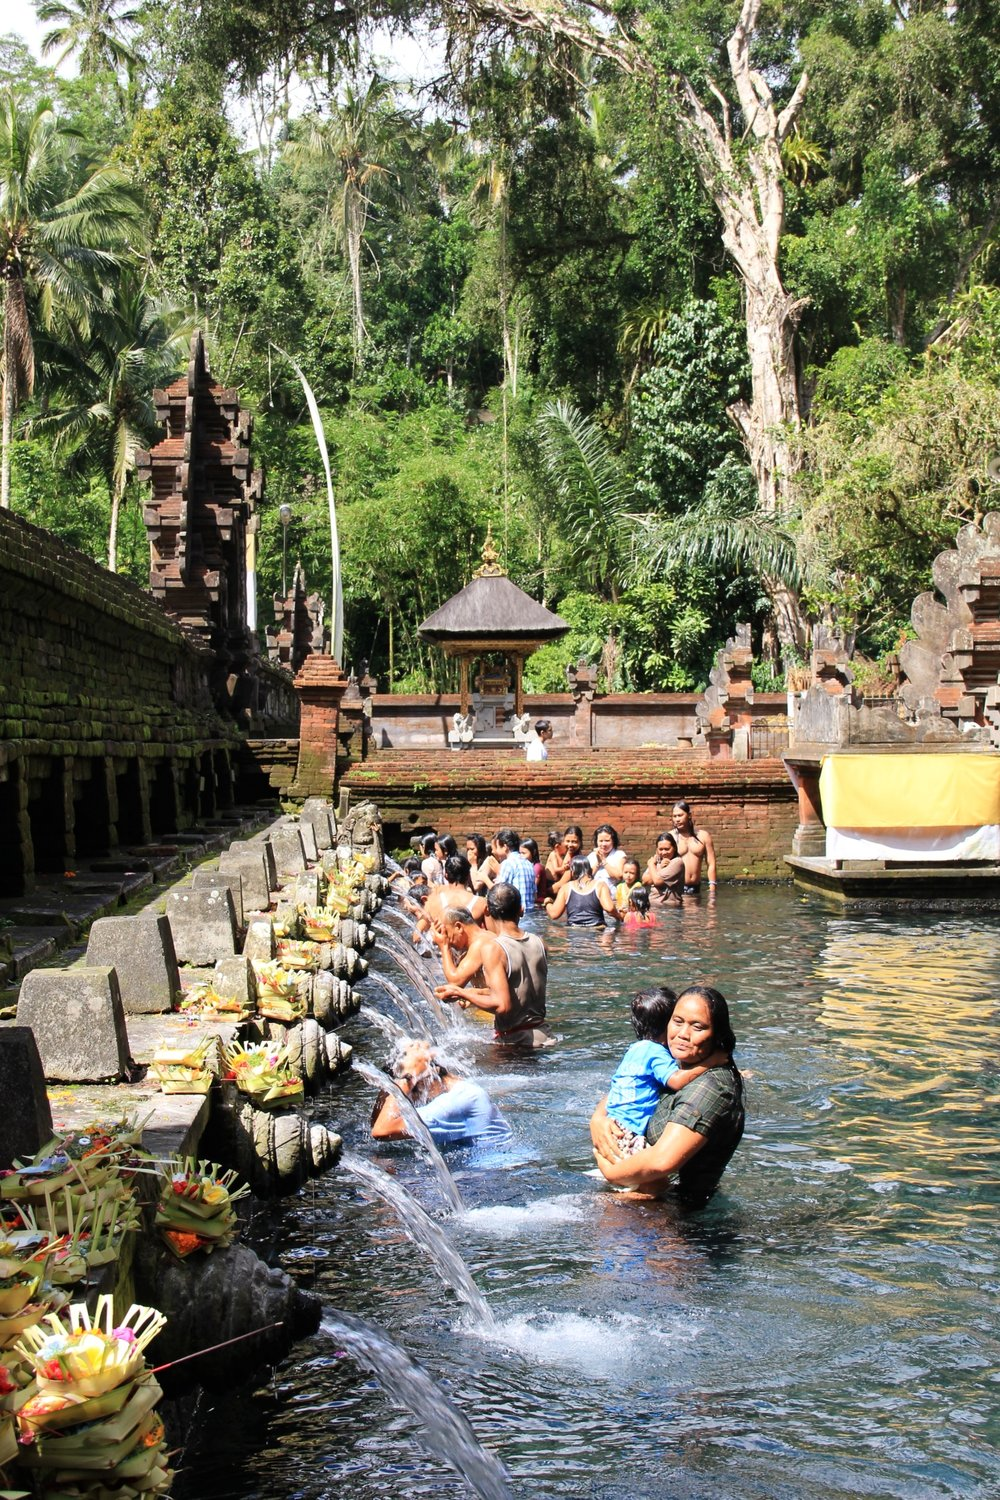 There are many temples to visit in Bali, but Tirta Empul should definitely be in your priority list. It is located in the middle of the jungle and it is said to have purifying waters.